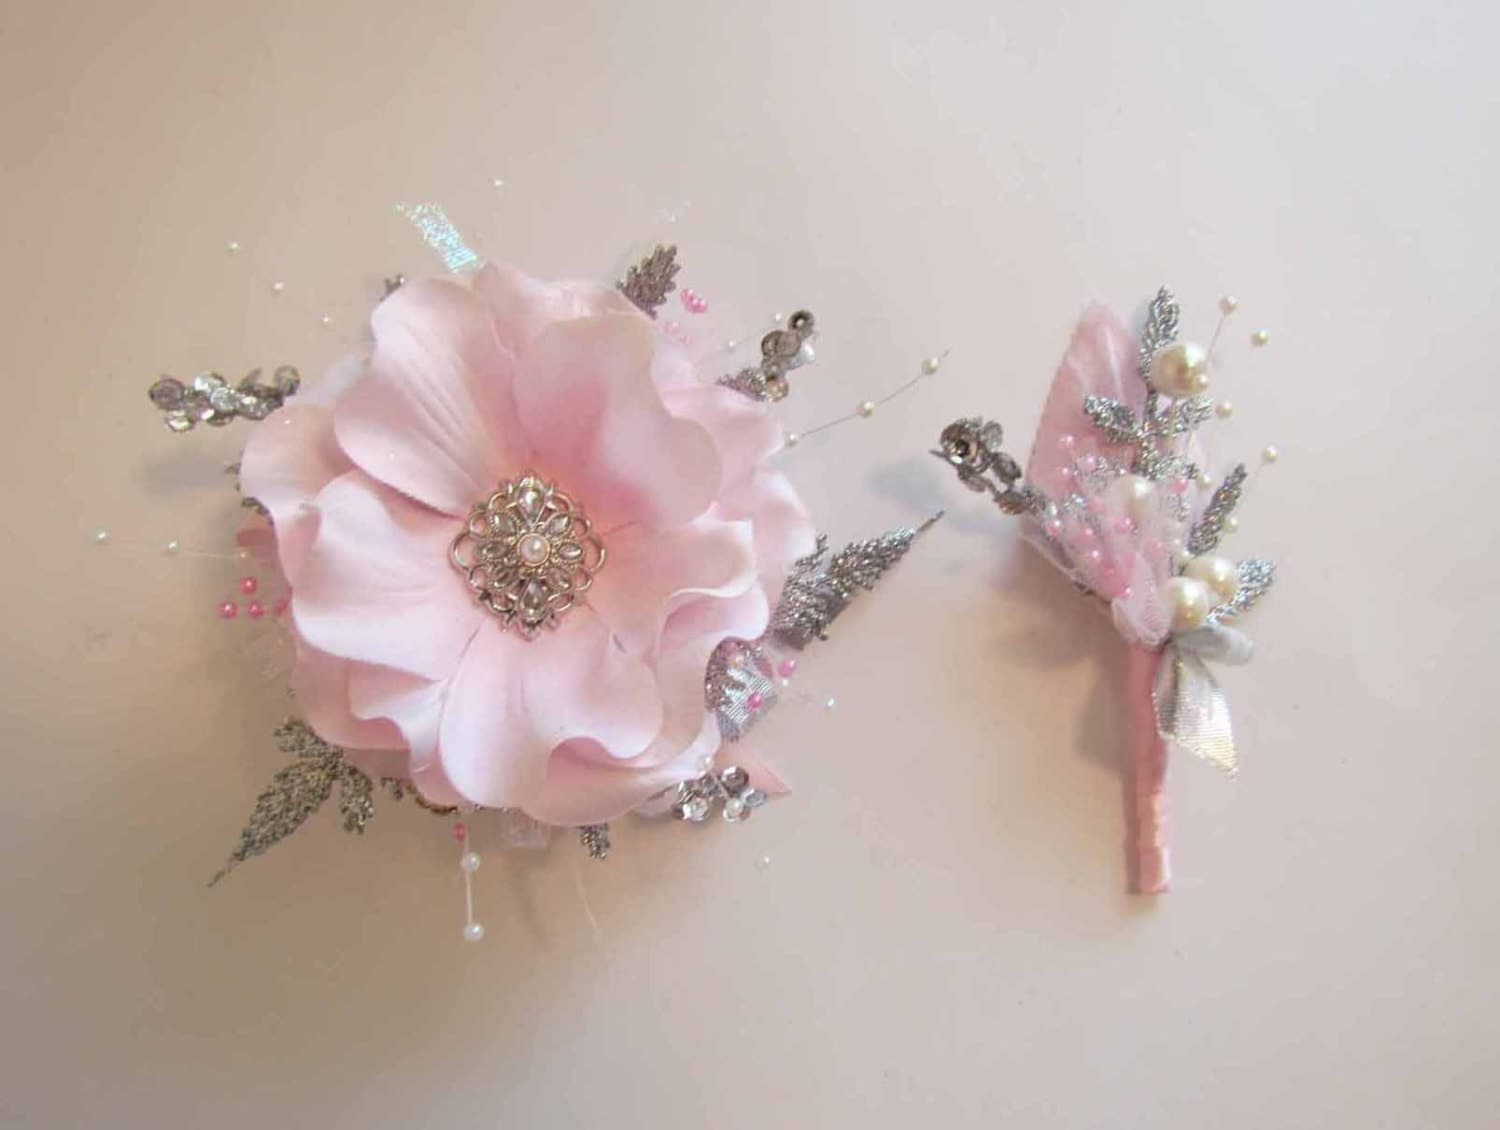 SALE PRICED Light Pink Prom Corsage & Boutonniere